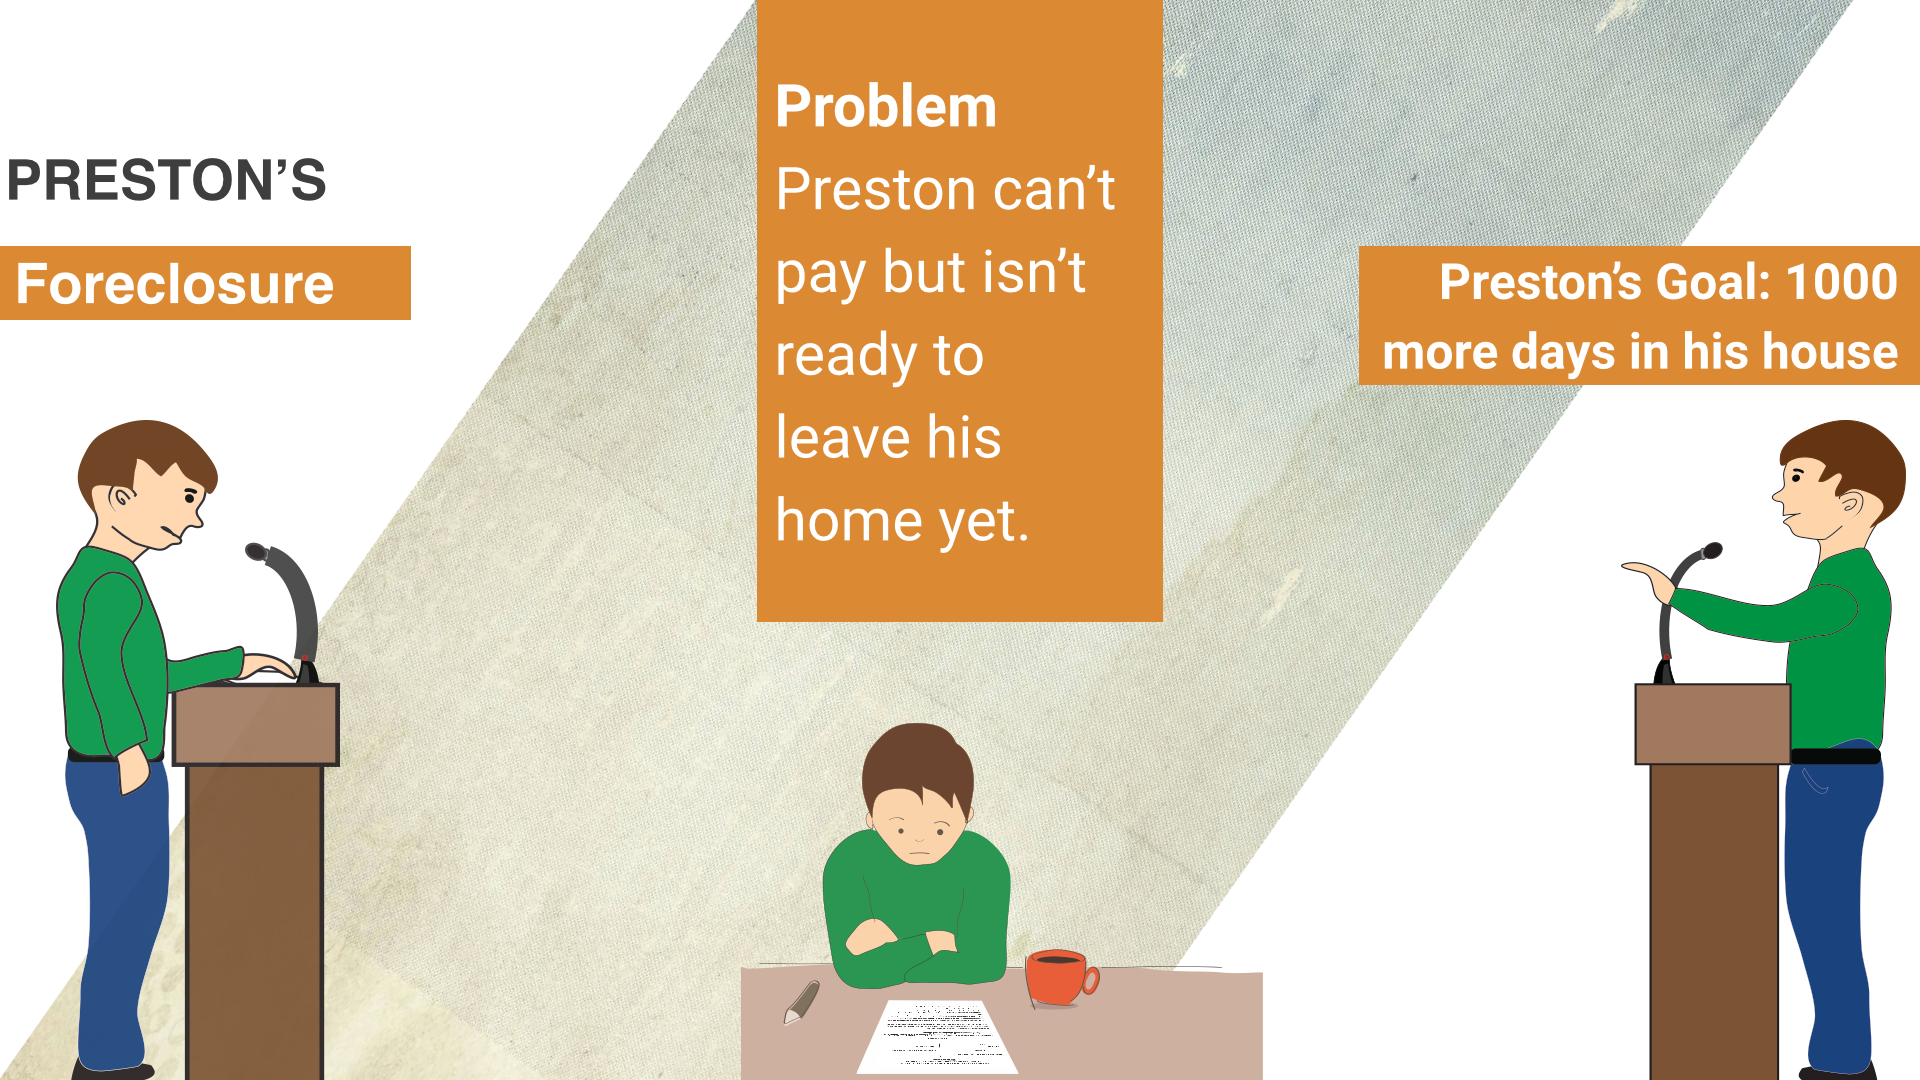 Preston's Foreclosure